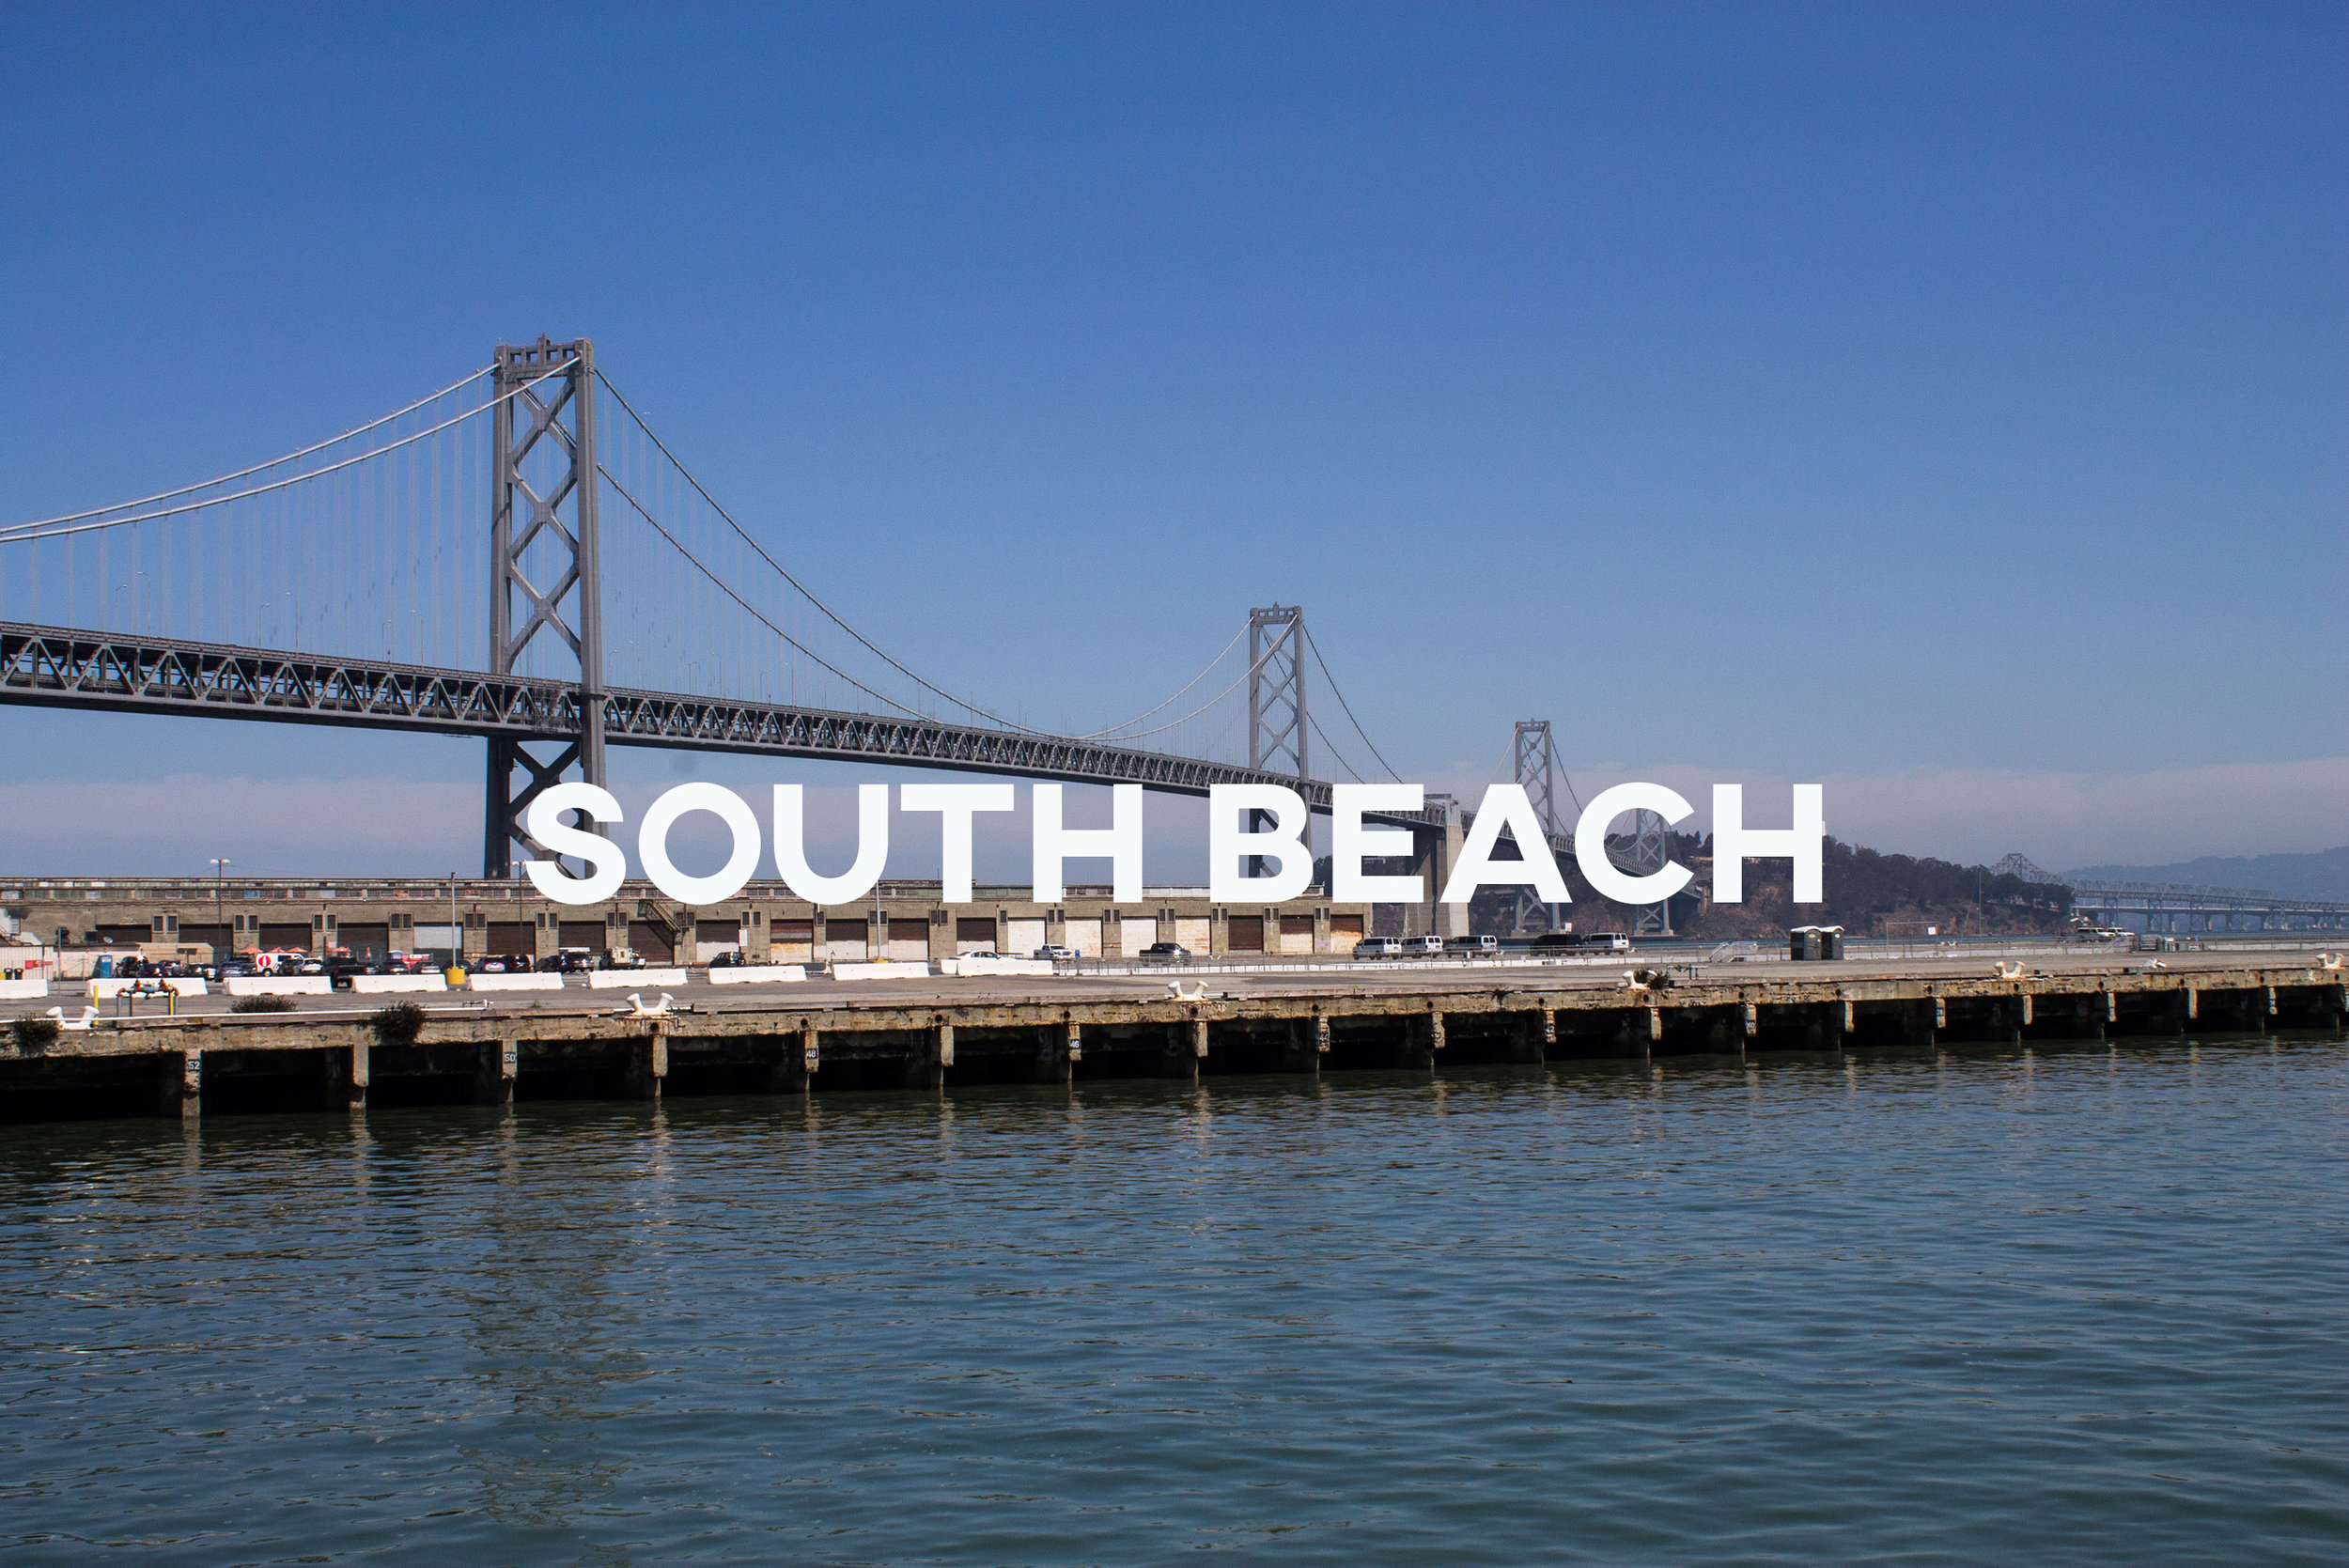 South Beach - San Francisco's newest neighborhood, full of crisp, clean, skyscraping rental units.